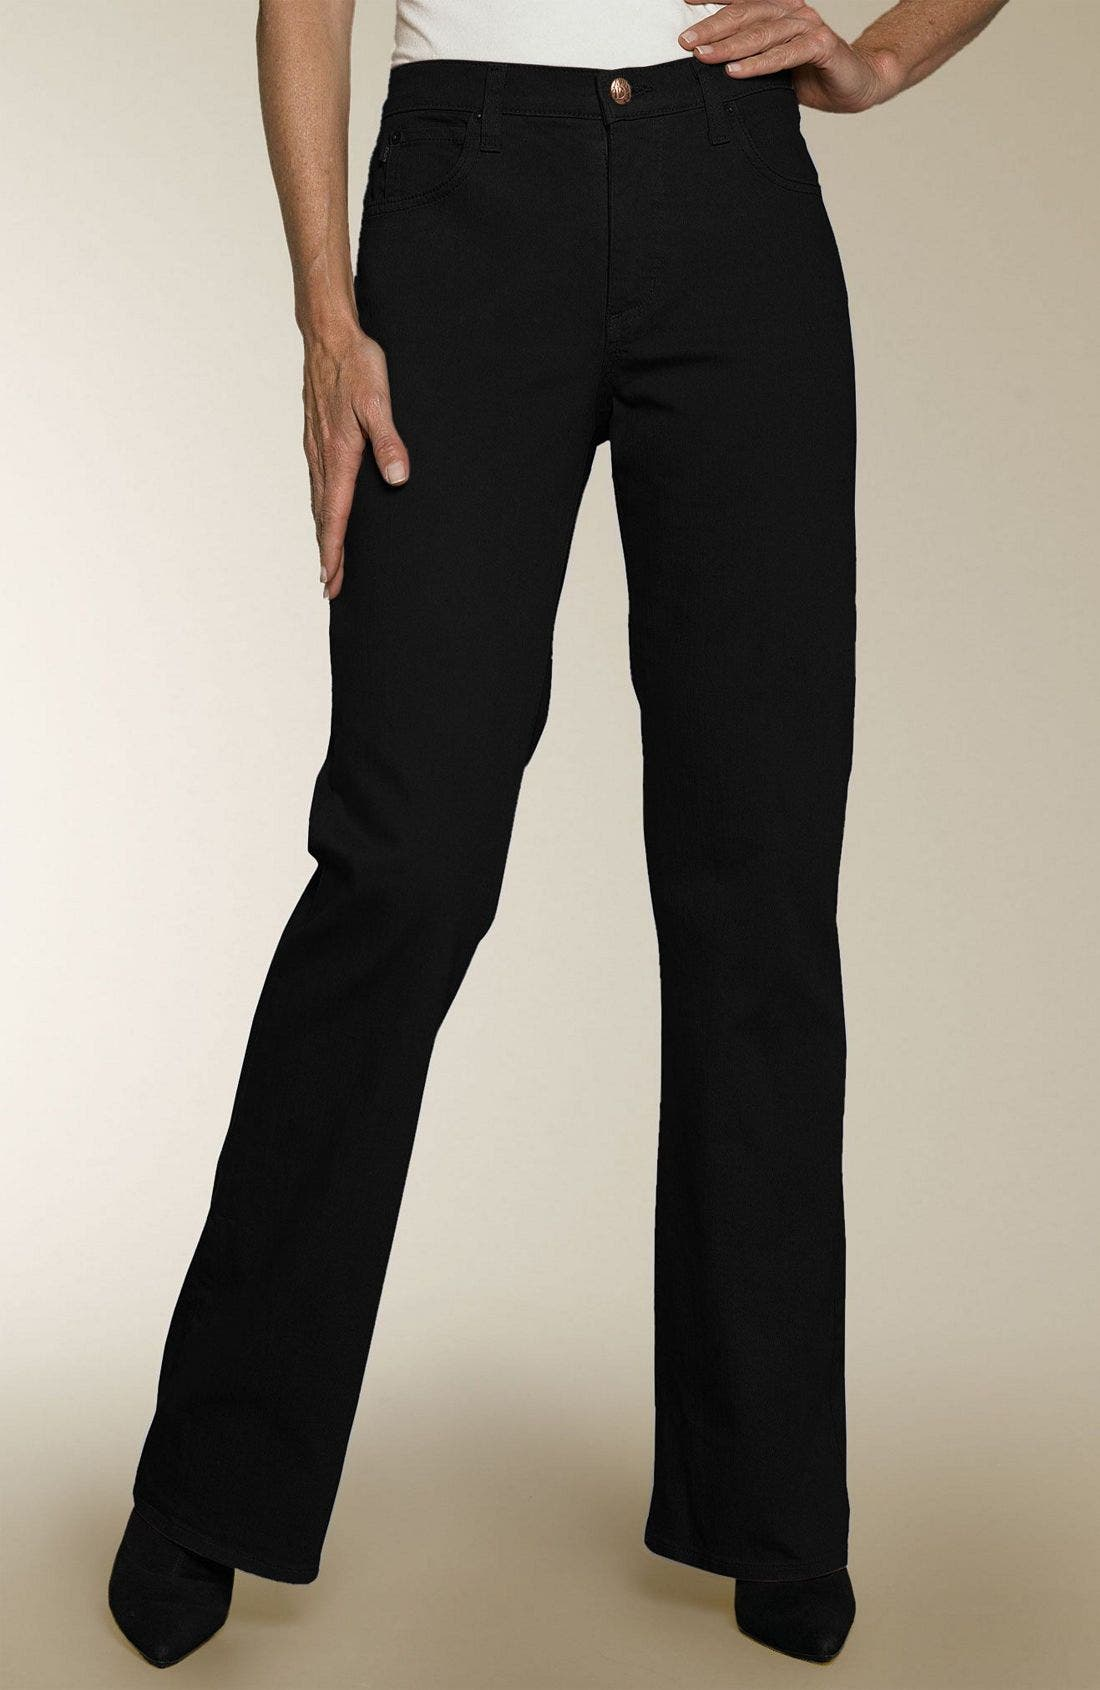 Alternate Image 1 Selected - NYDJ Bootcut Stretch Jeans (Petite)